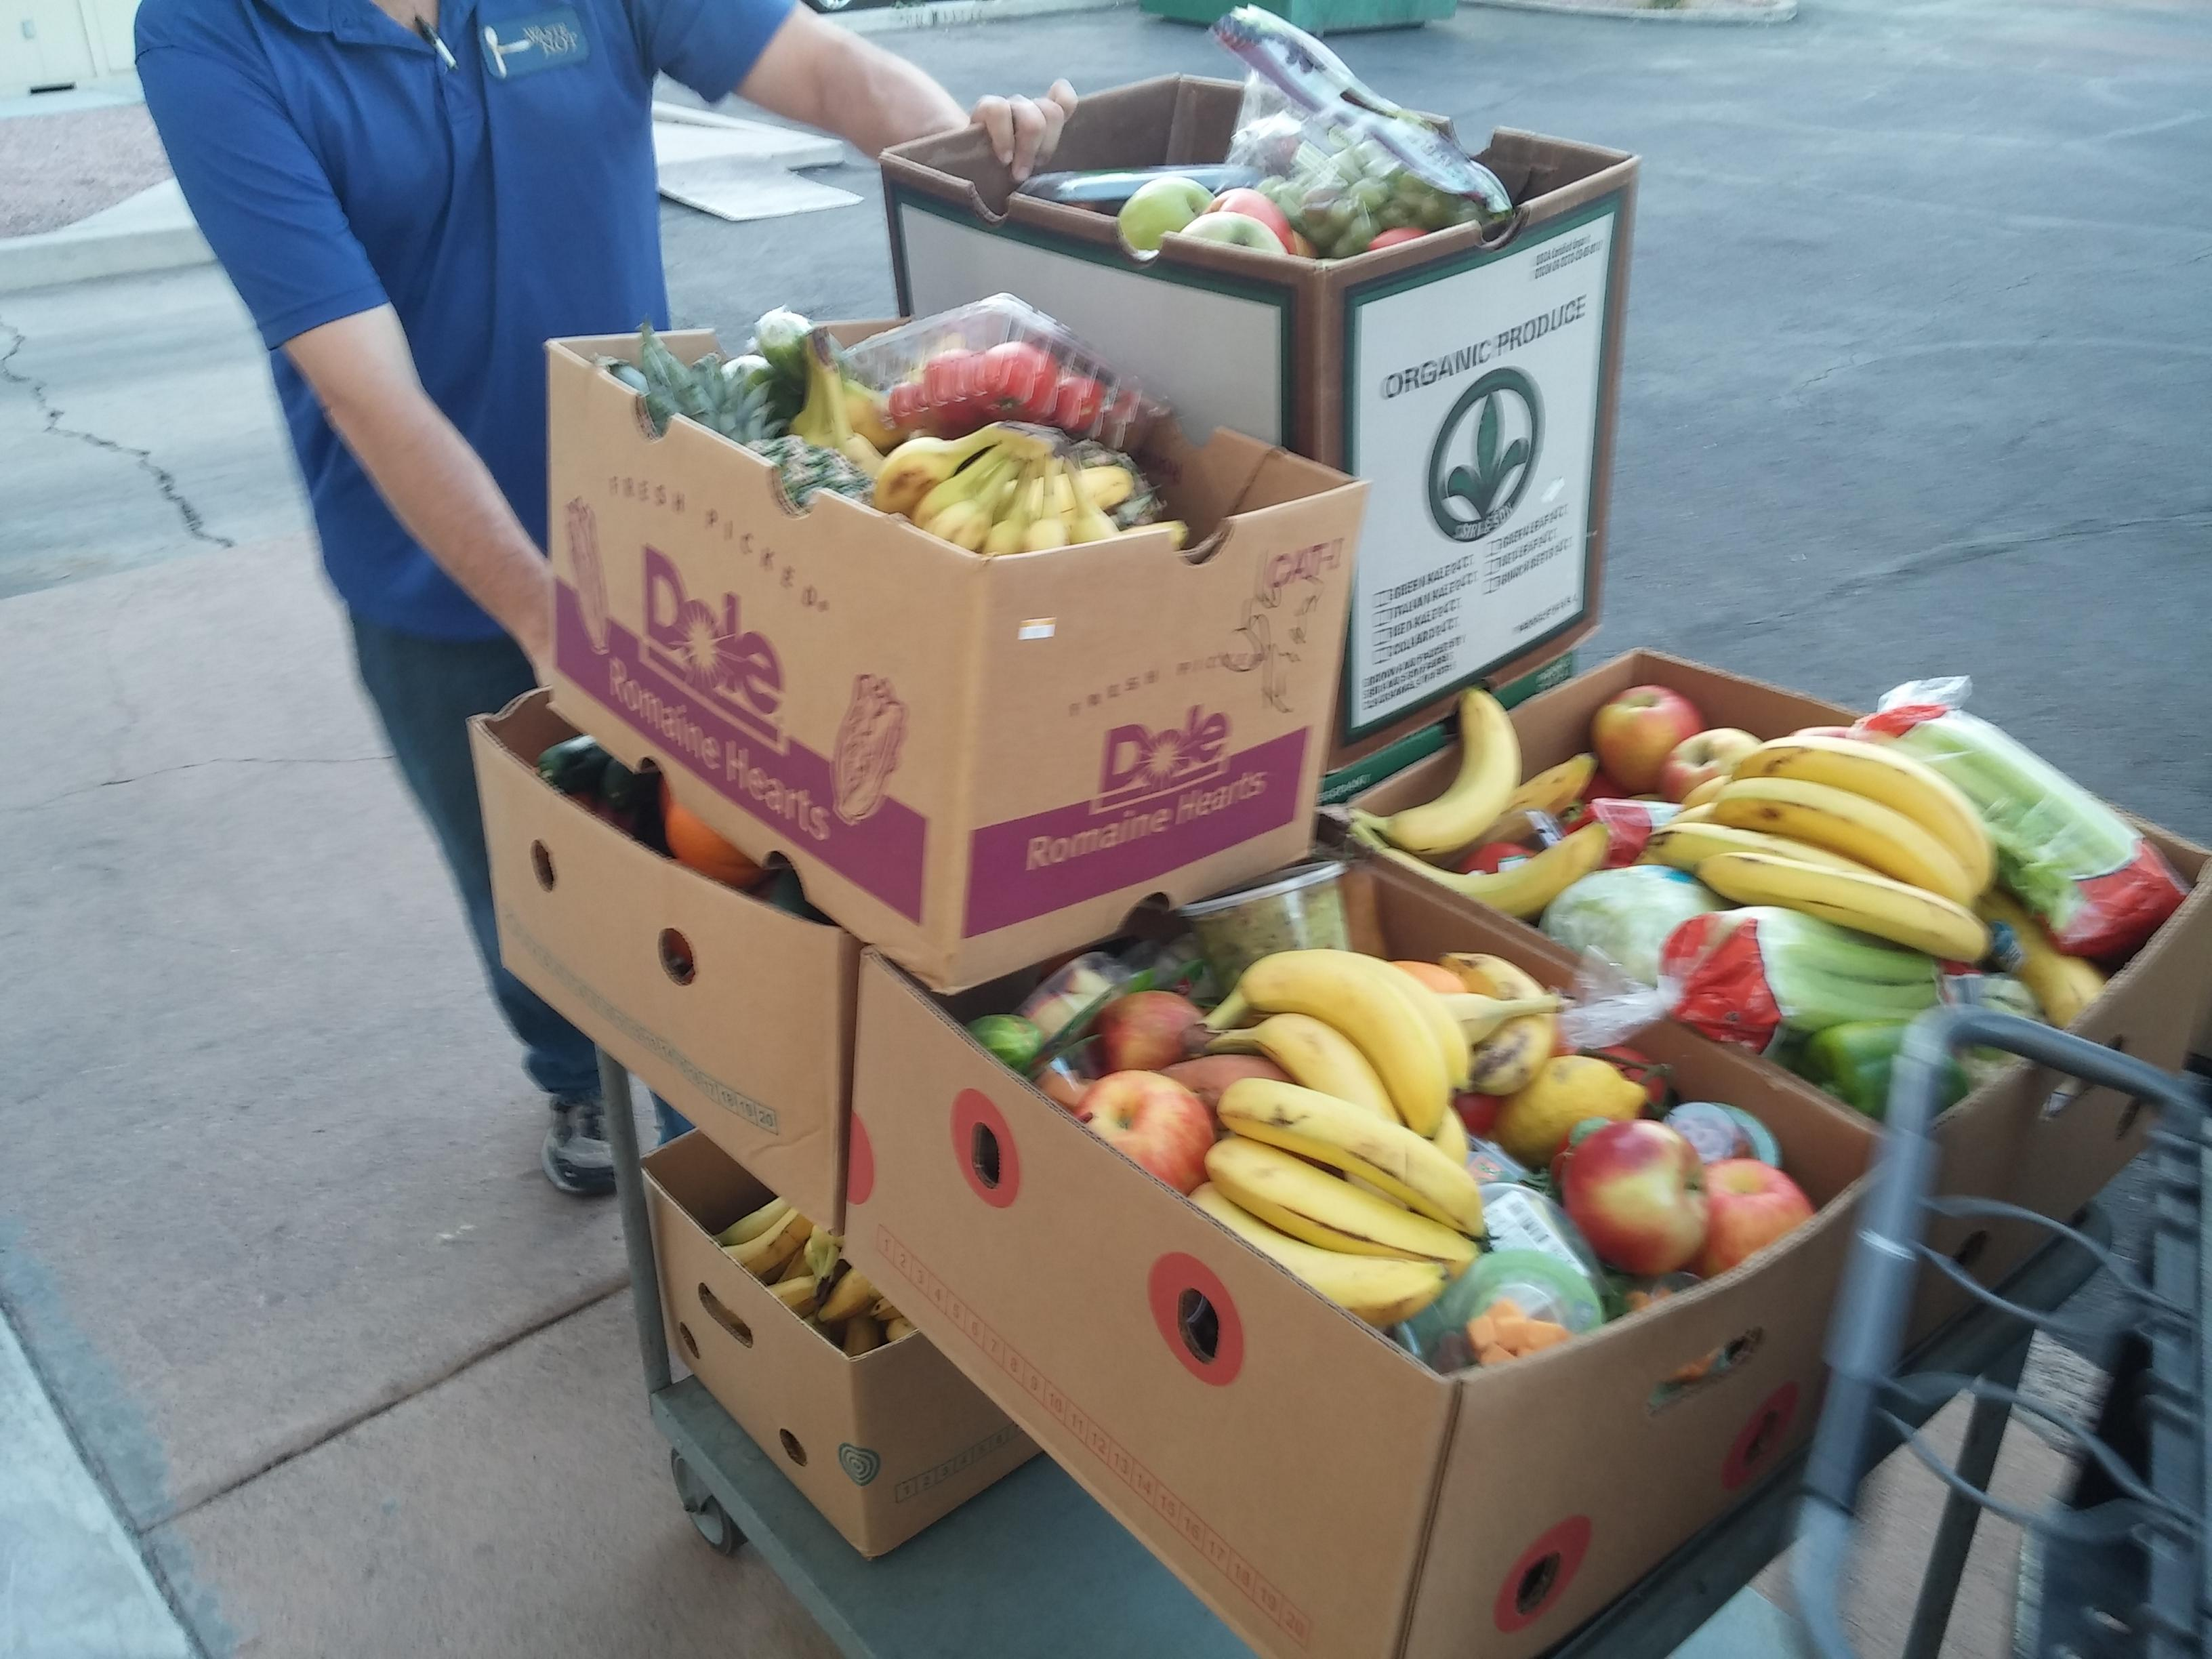 Food, waste, recovery